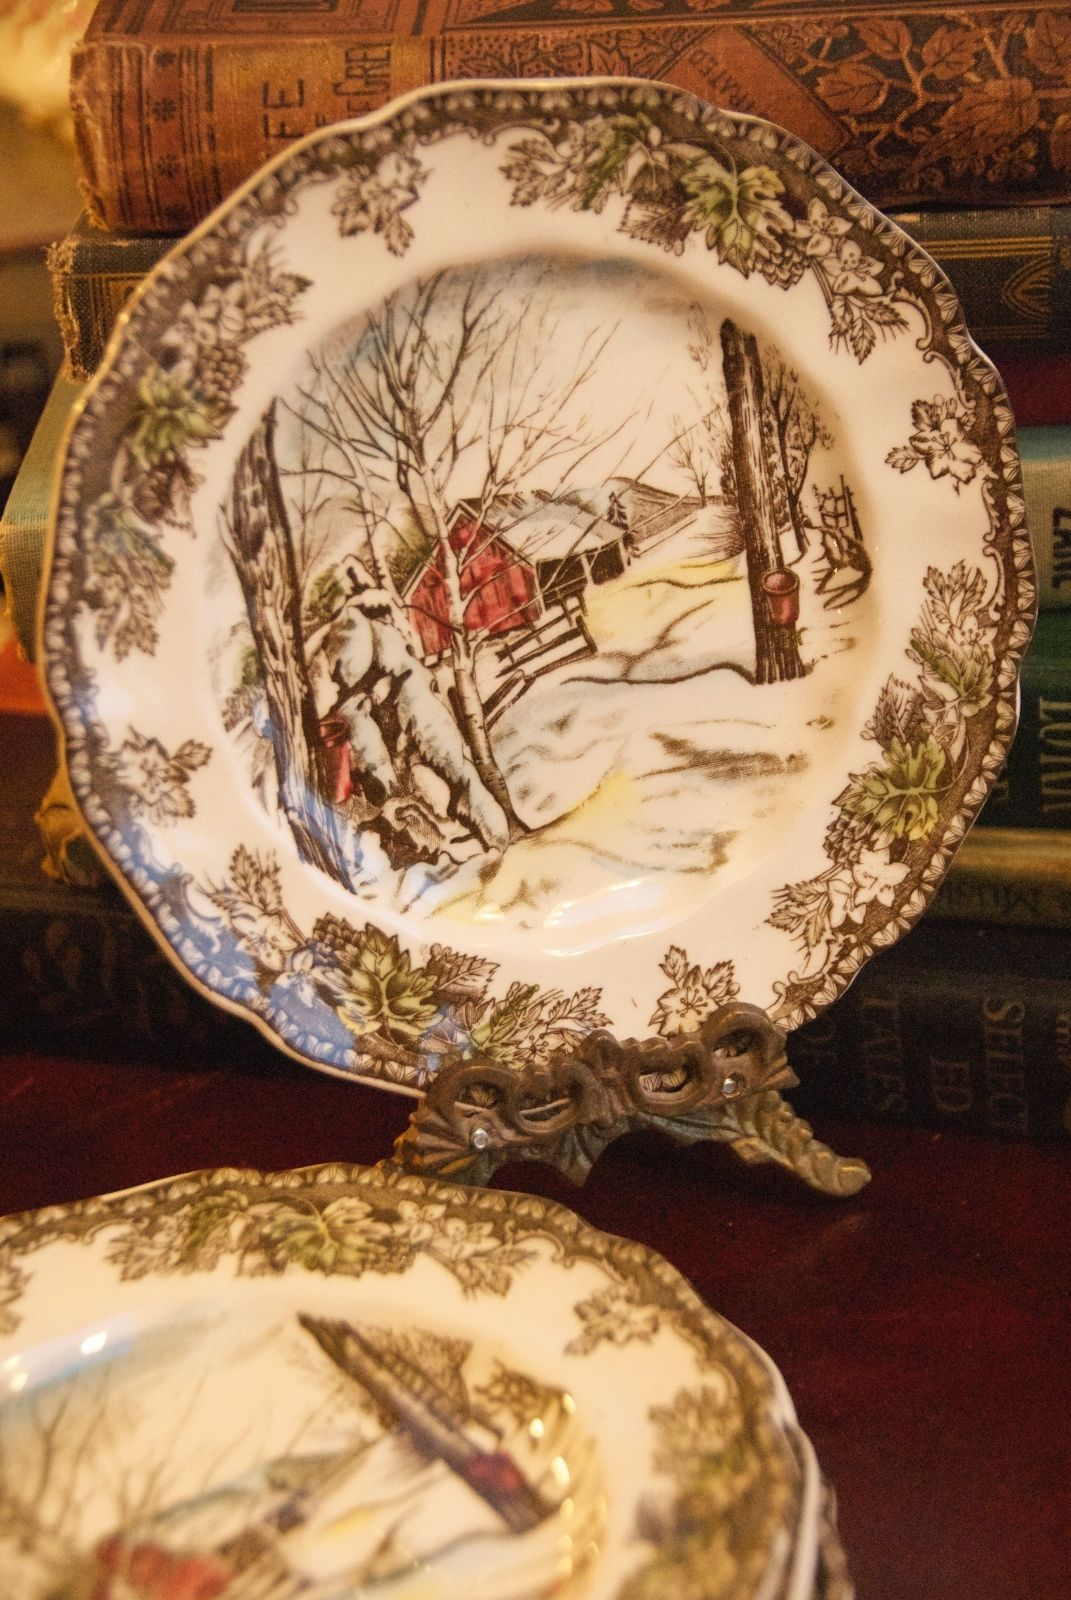 Primary image for JOHNSON BROS SUGAR MAPLES BREAD PLATE FRIENDLY VILLAGE VINTAGE ENGLAND IRONSTONE